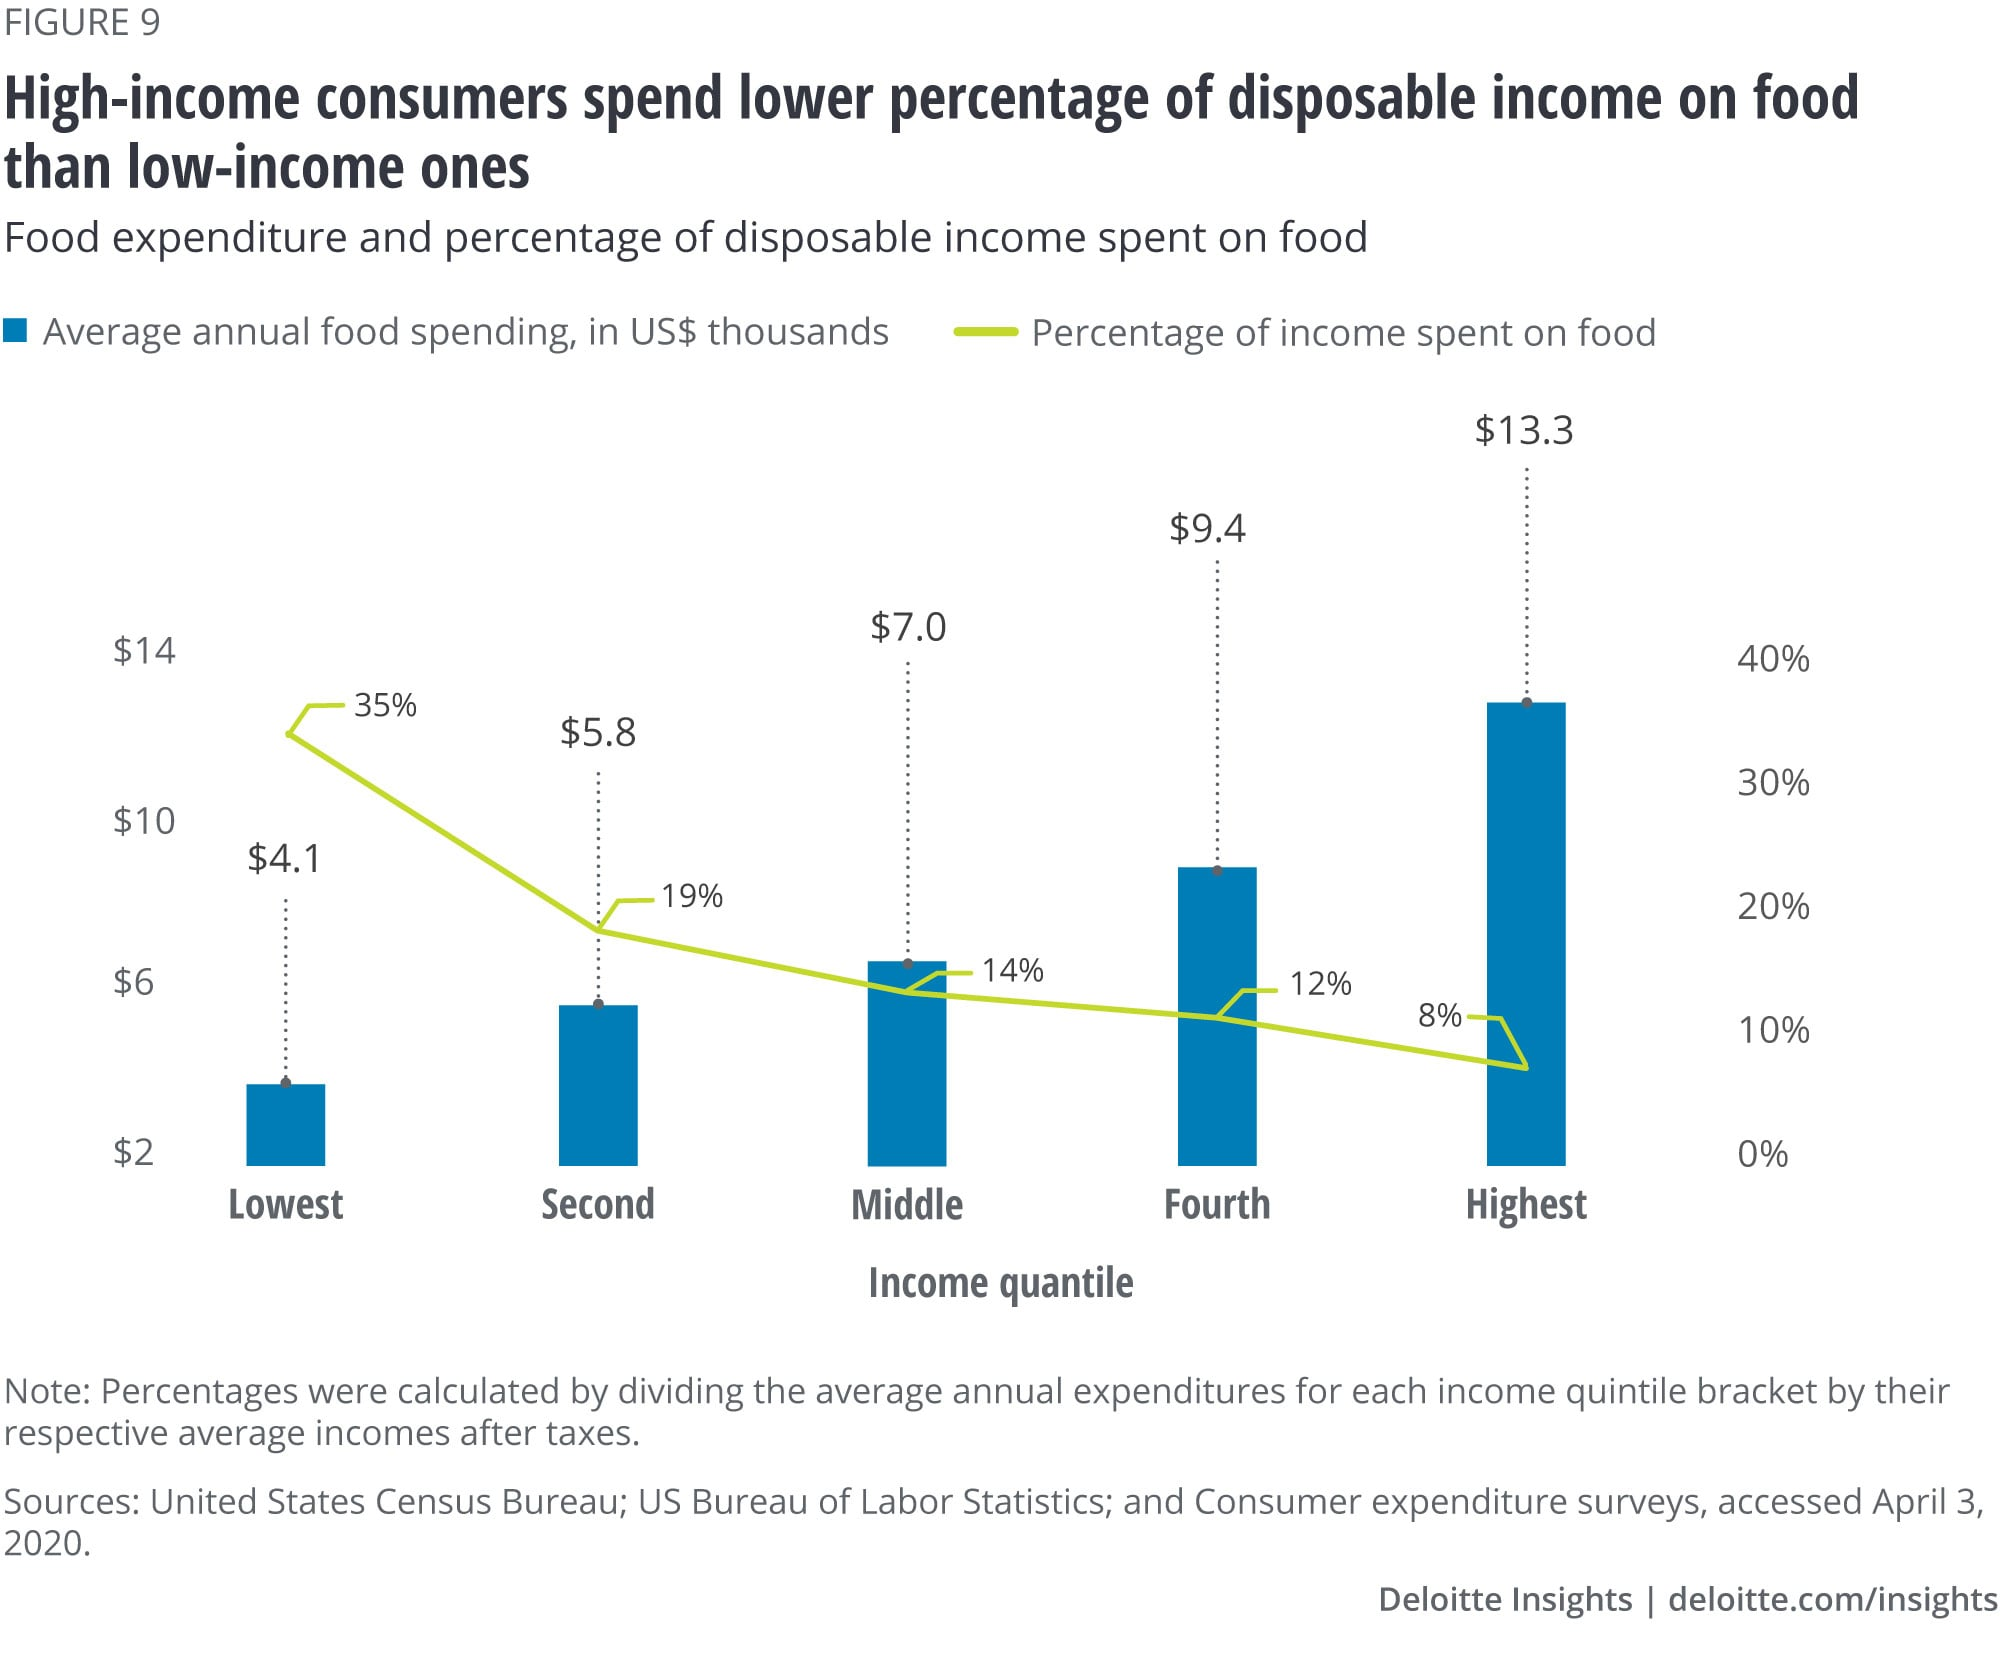 High-income consumers spend lower percentage of disposable income on food than low-income ones